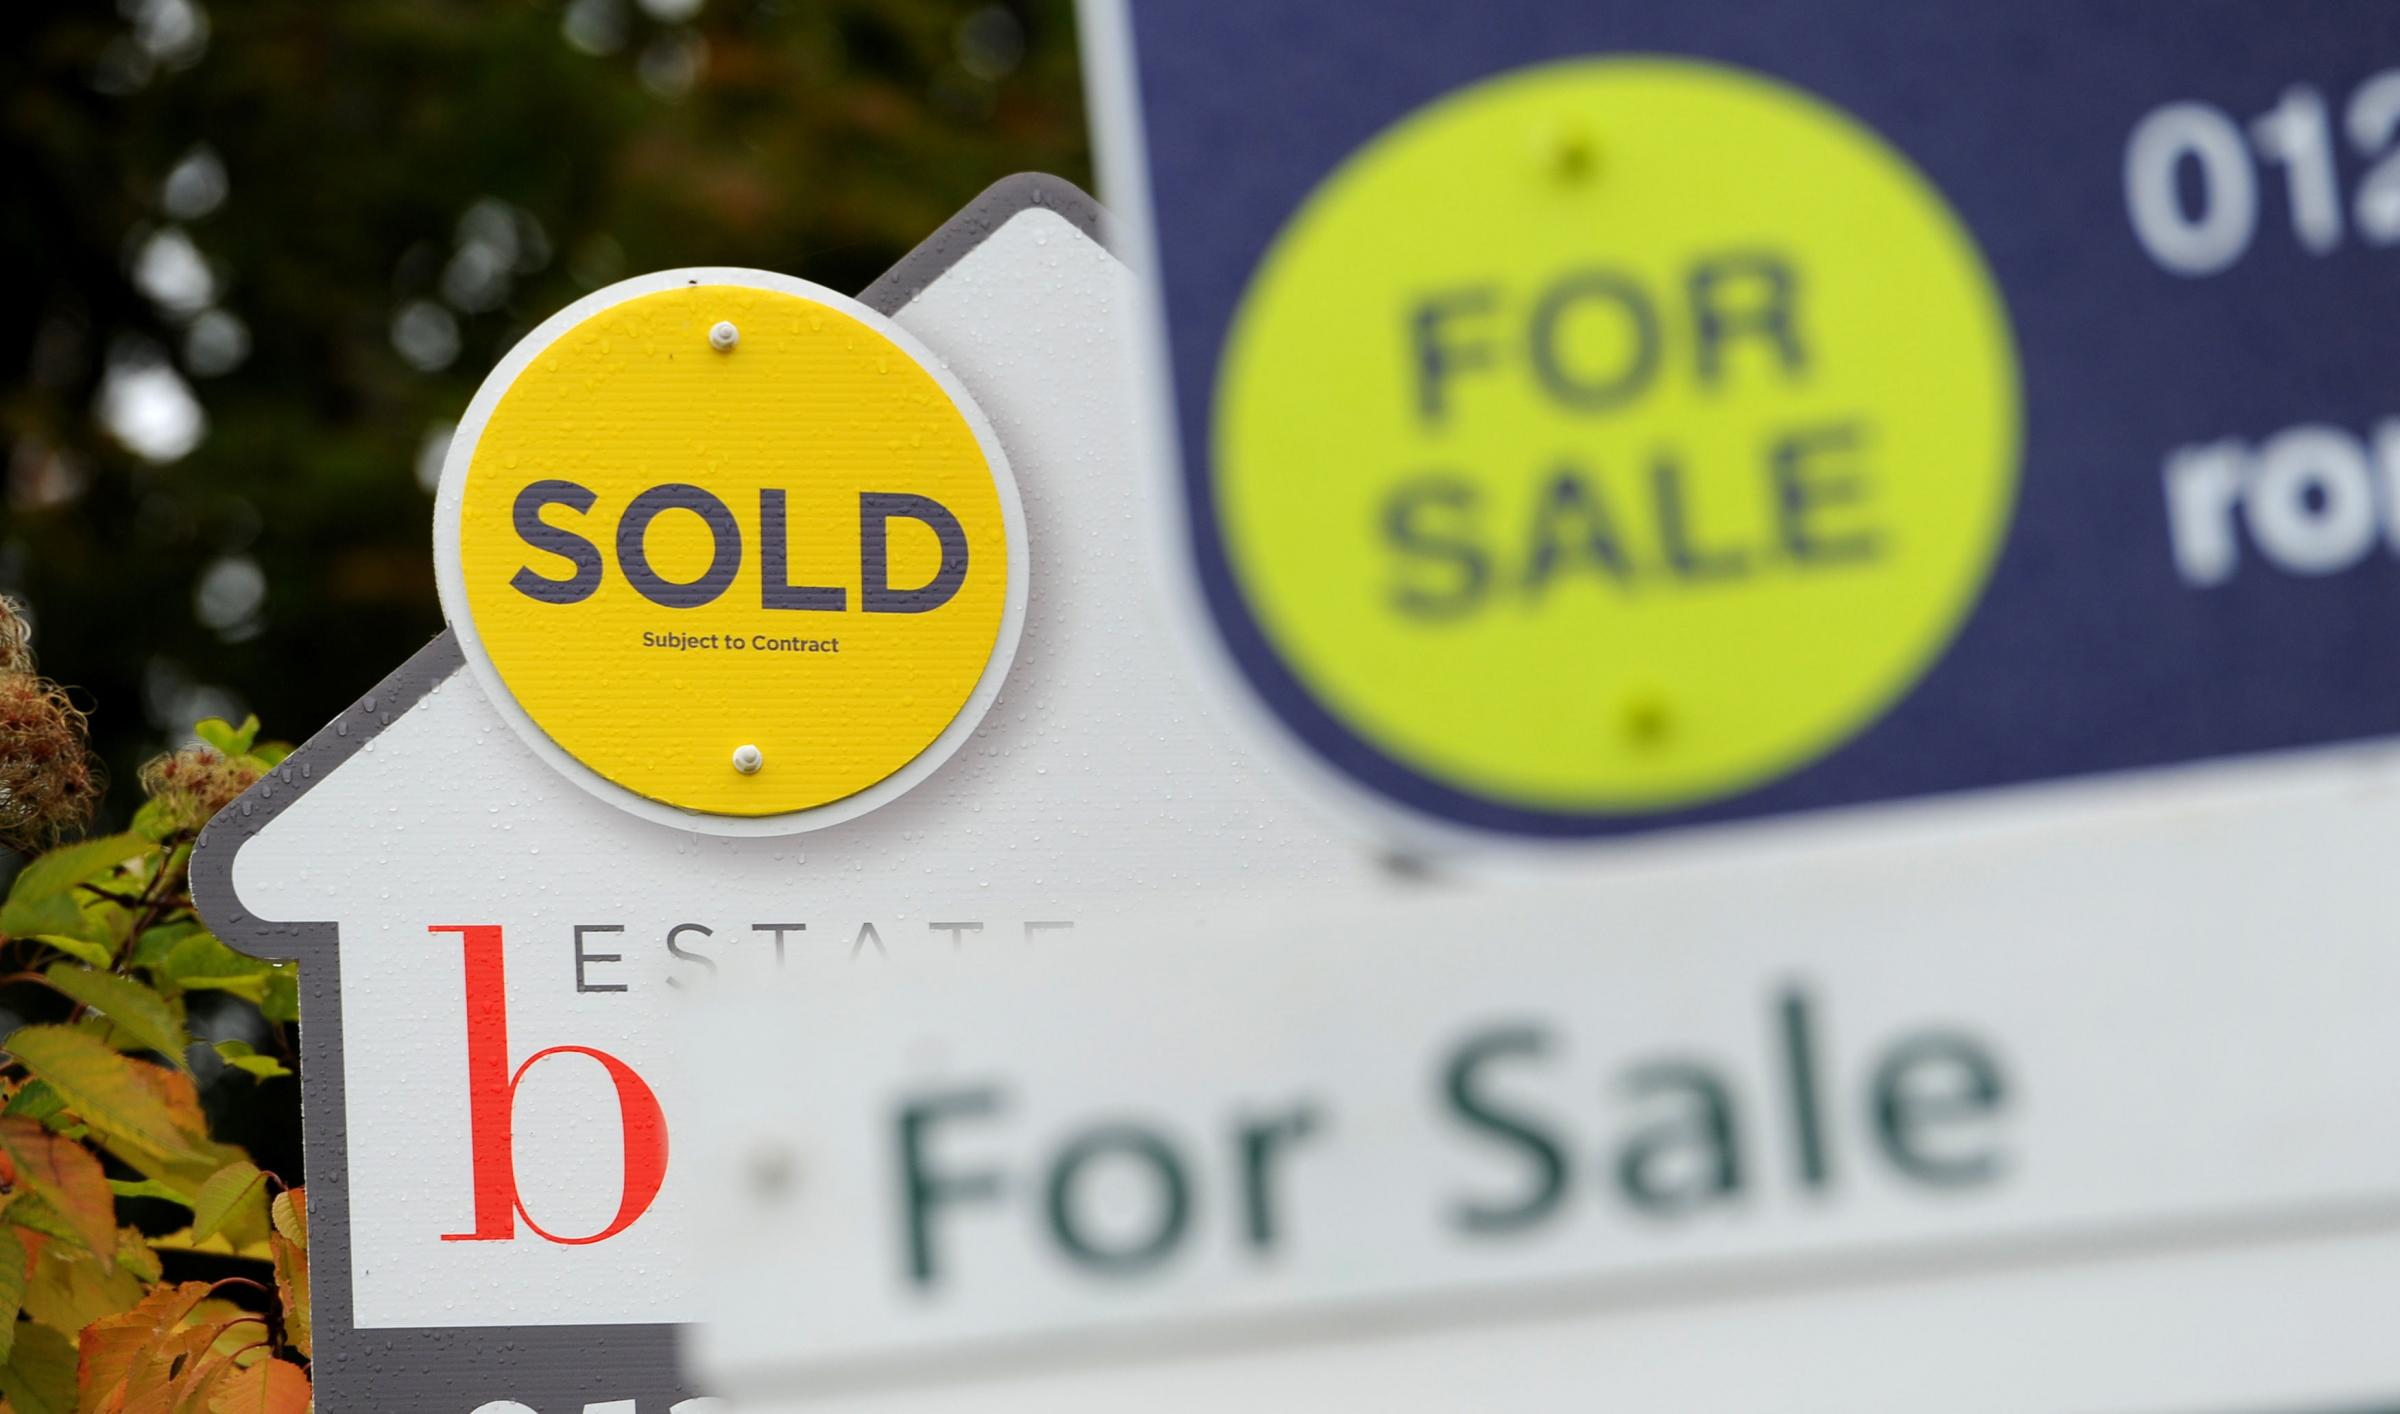 Cornwall house prices increase slightly, latest figures show